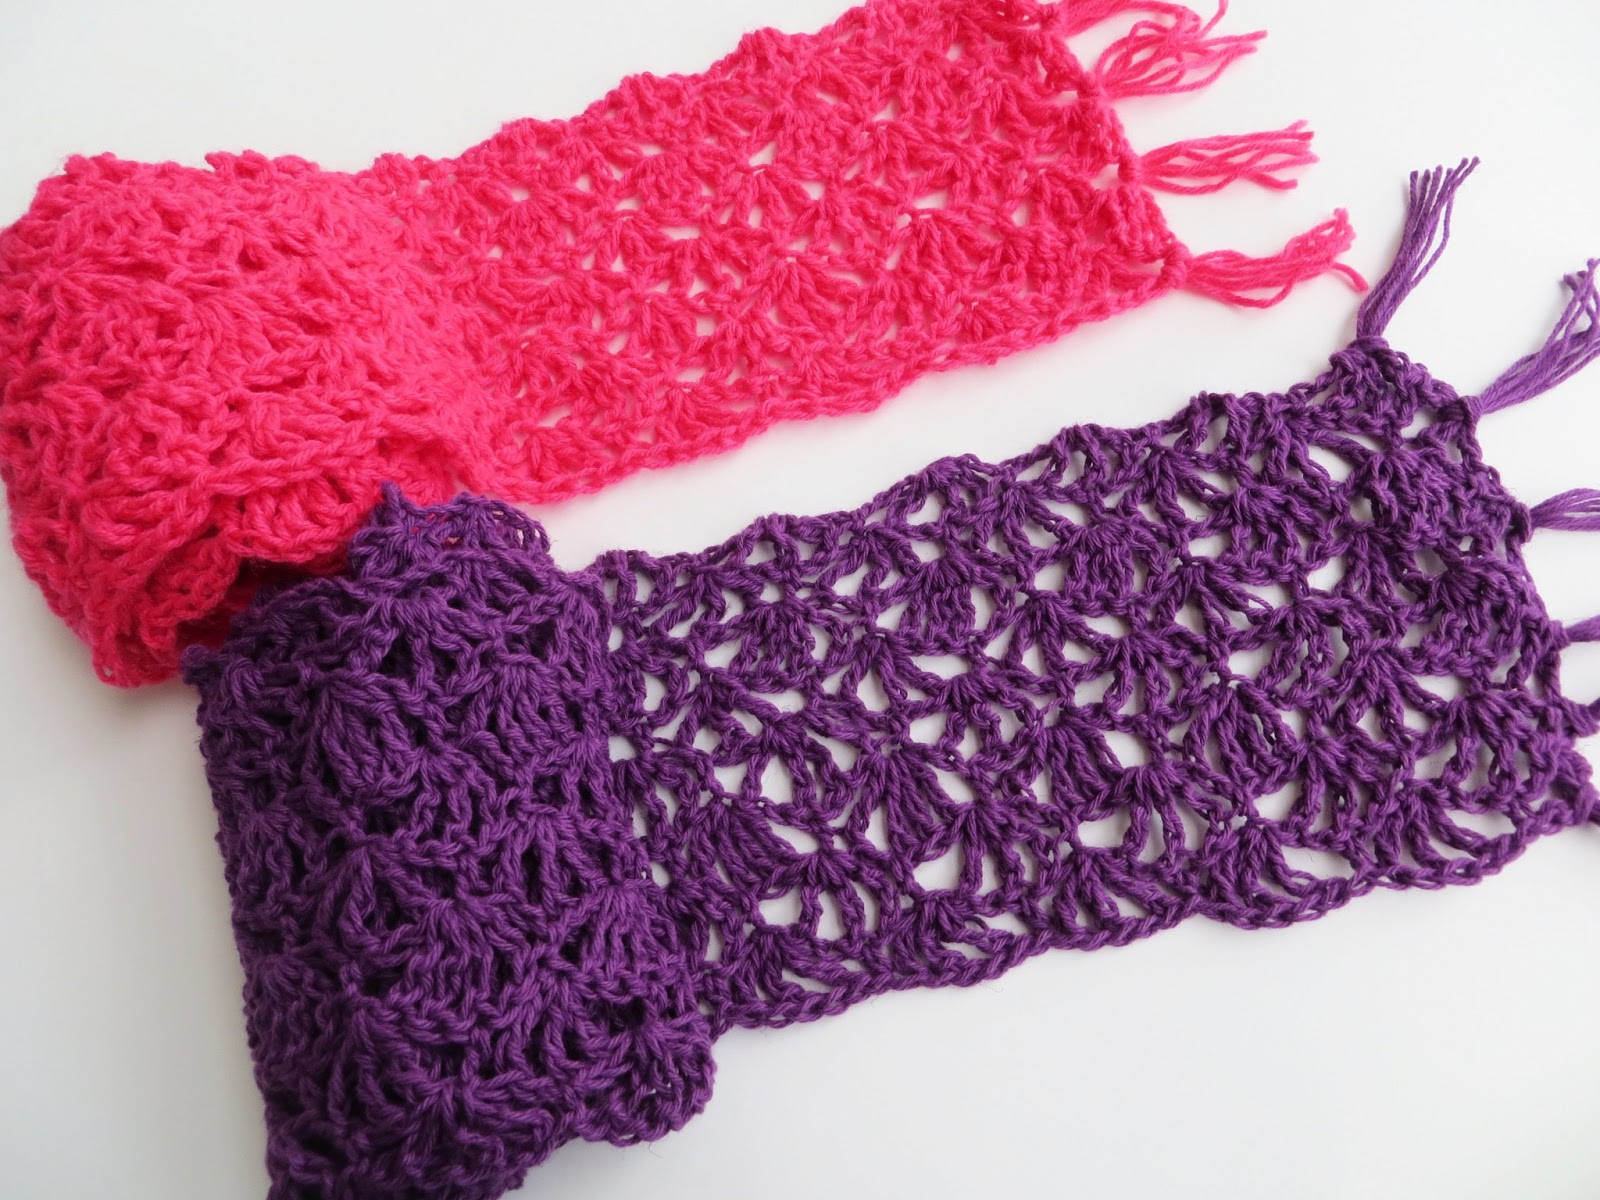 Crochet Patterns Tutorial : Crochet Dreamz: Alana Lacy Scarf, Free Crochet Pattern